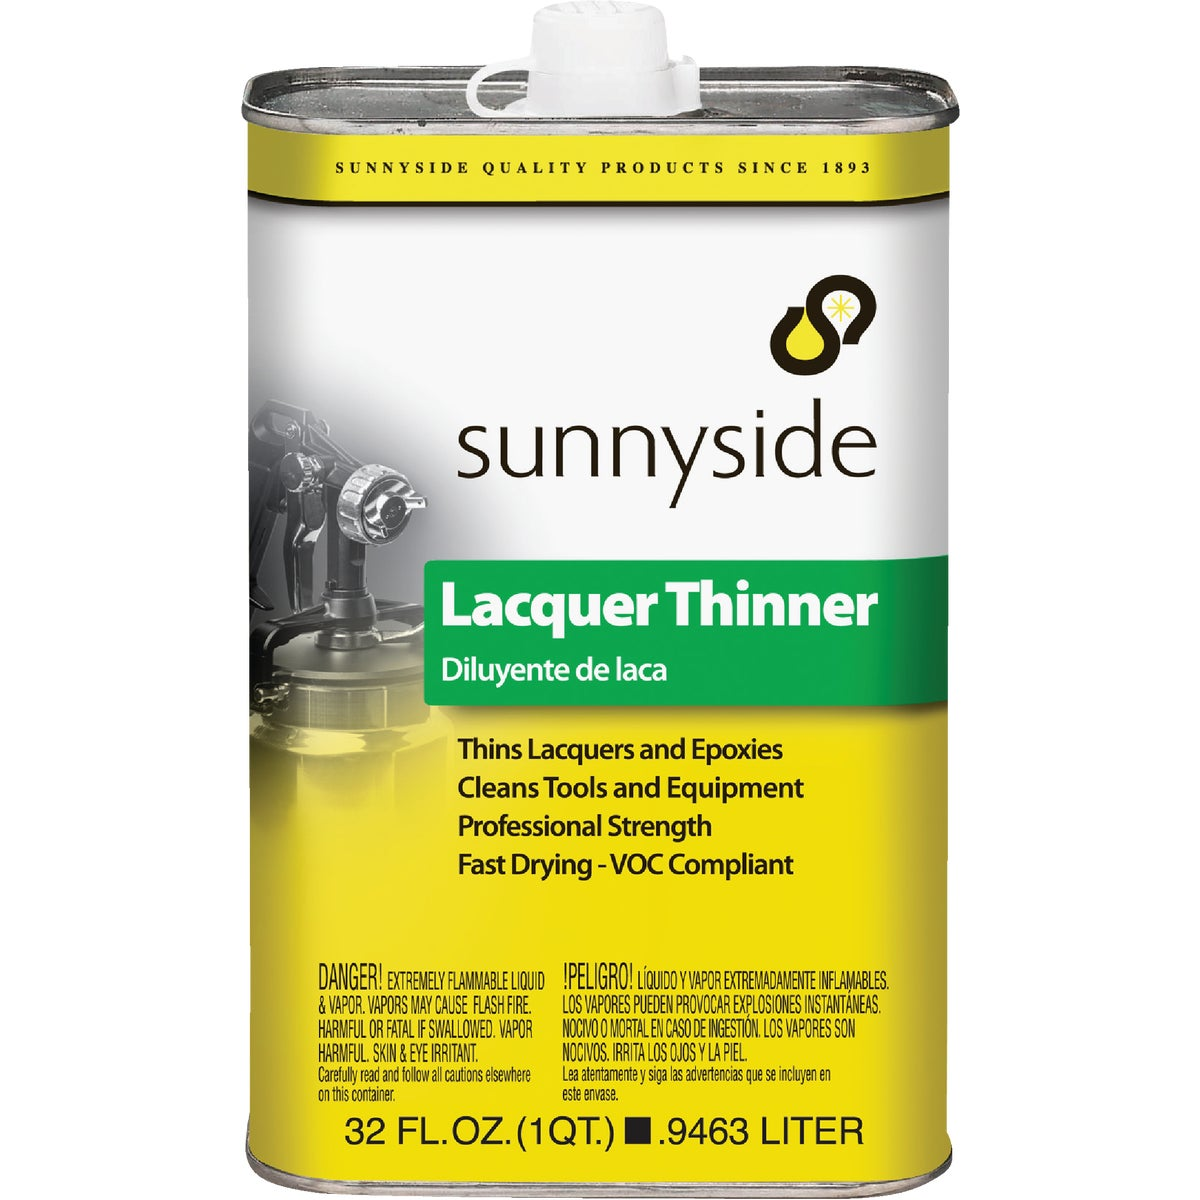 LVOC LACQUER THINNER - 47732 by Sunnyside Corp